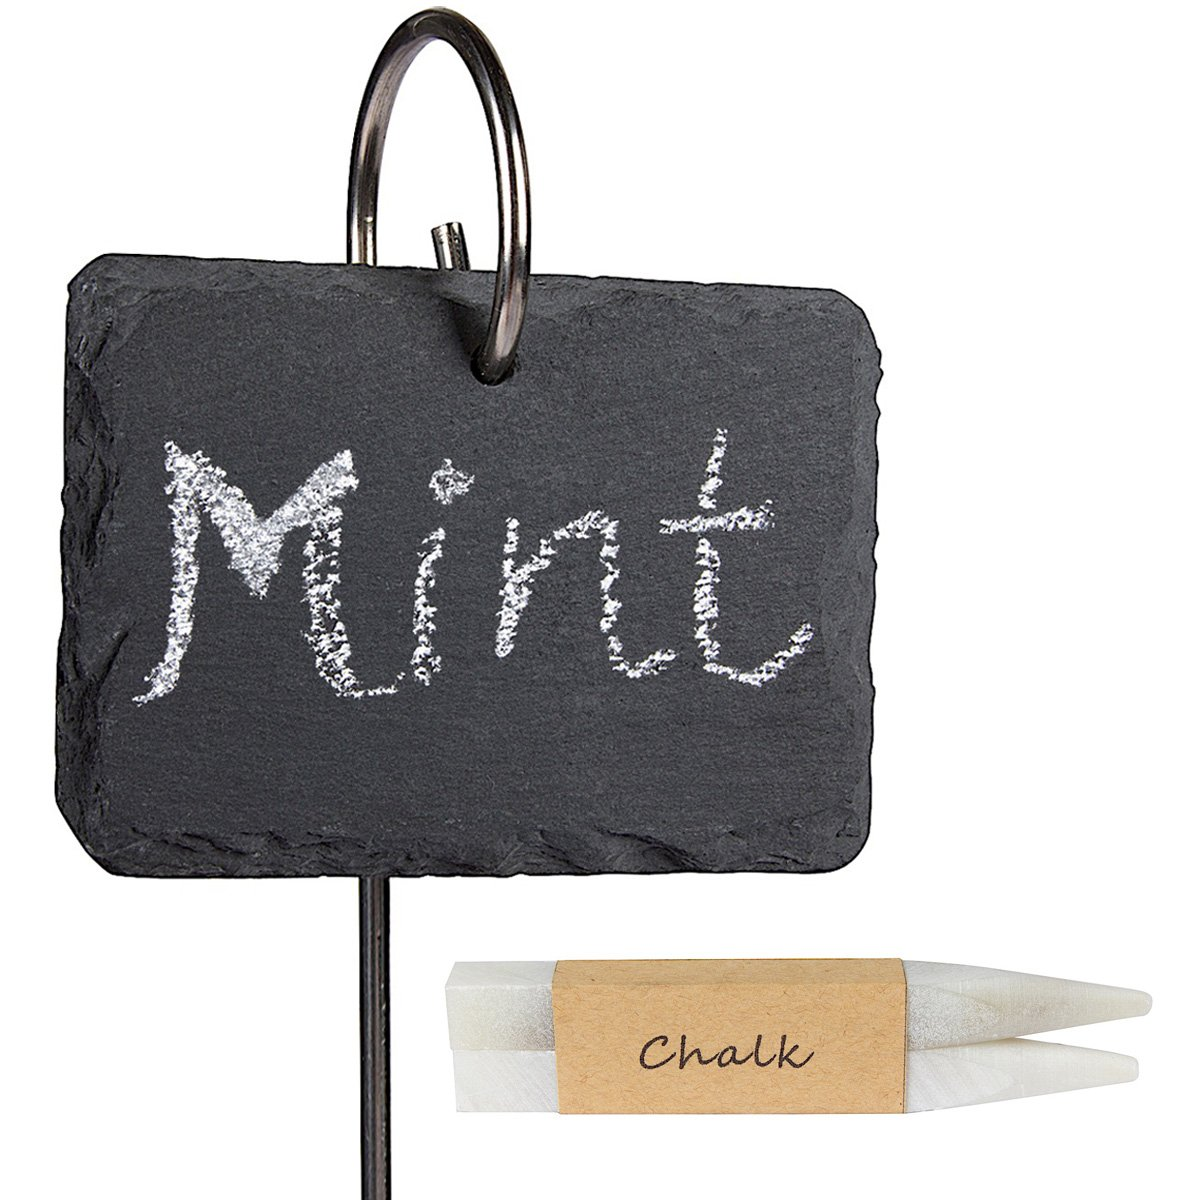 LULIND - Slate Plant Labels, Stainless Steel Stakes and 2 Chalk Pencils (10 Pack) by LULIND